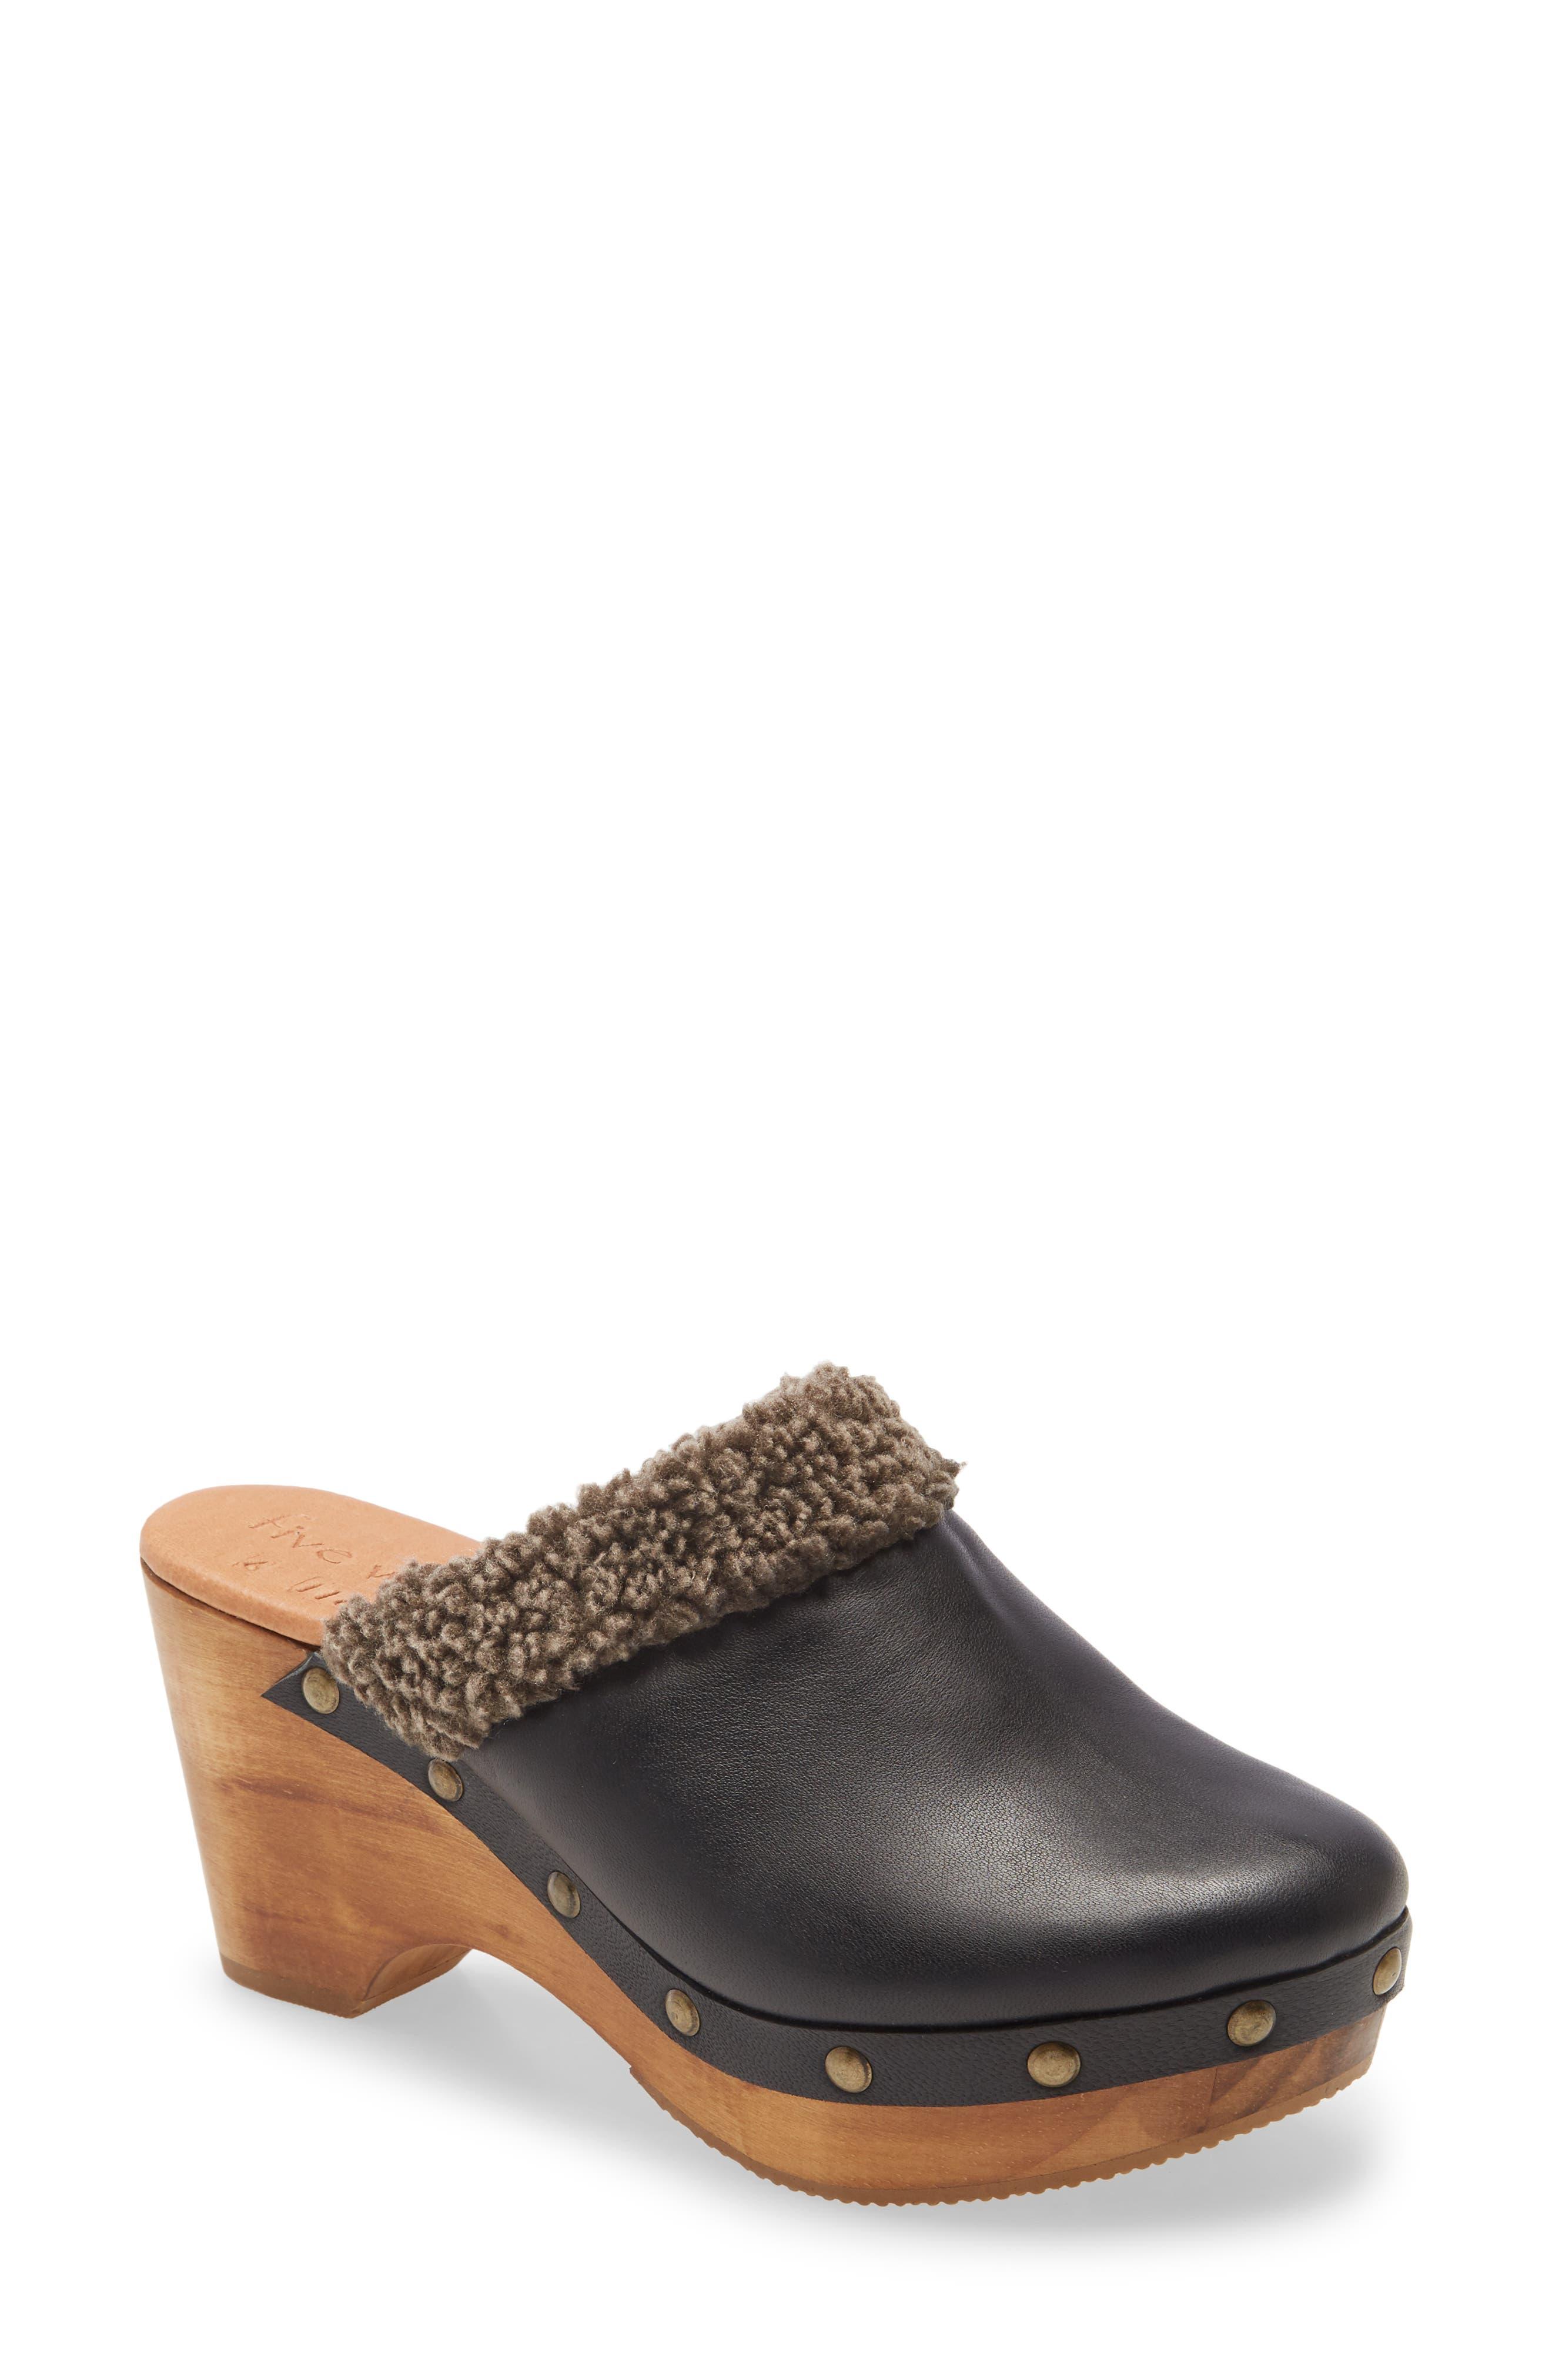 A curvy platform and heel carved from a single piece of wood elevate the vintage aesthetic of a studded clog in rich leather with a plush faux-fur lining. This style is part of the Five Worlds by Cordani collection, which was inspired by the ancient Aztecs and the Mexican landscape. Style Name: Cordani Zorba 2 Clog (Women). Style Number: 6102536. Available in stores.